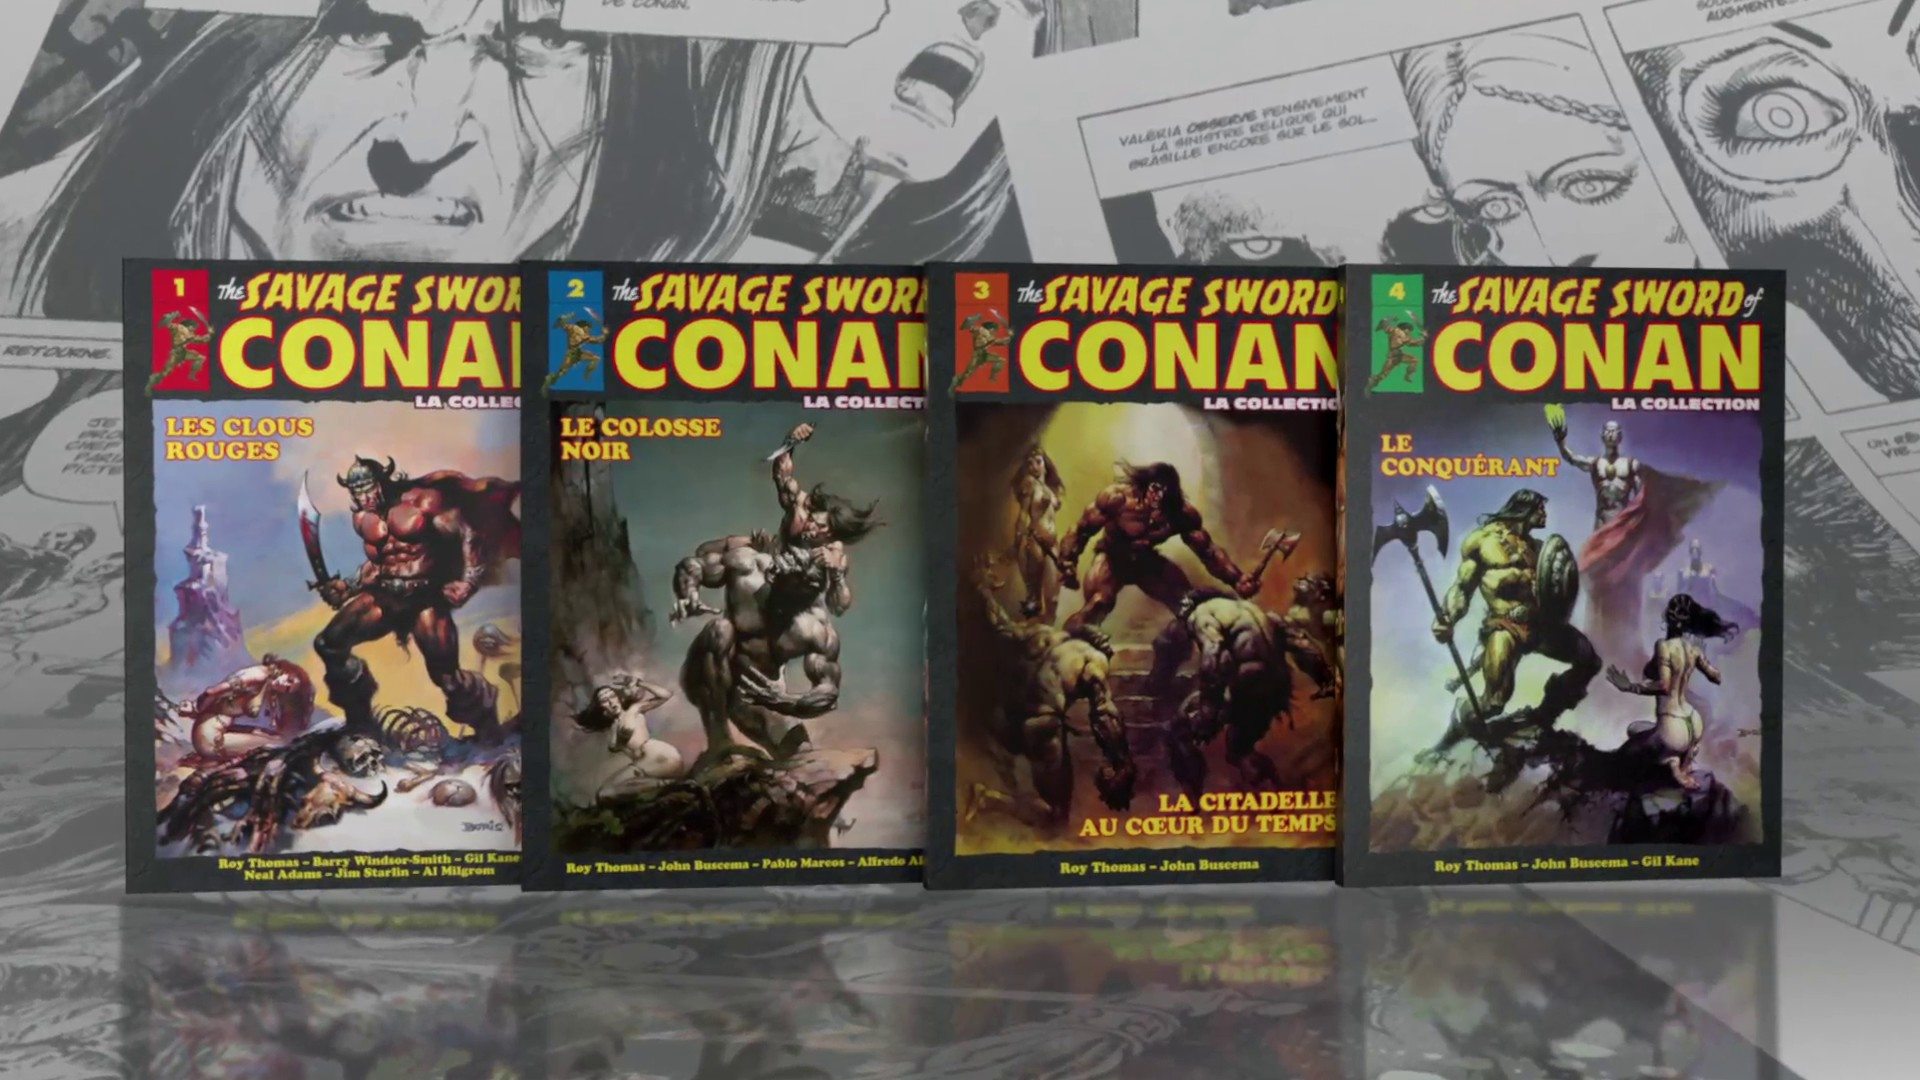 Image de la Collection Savage Sword of Conan aux éditions Hachette